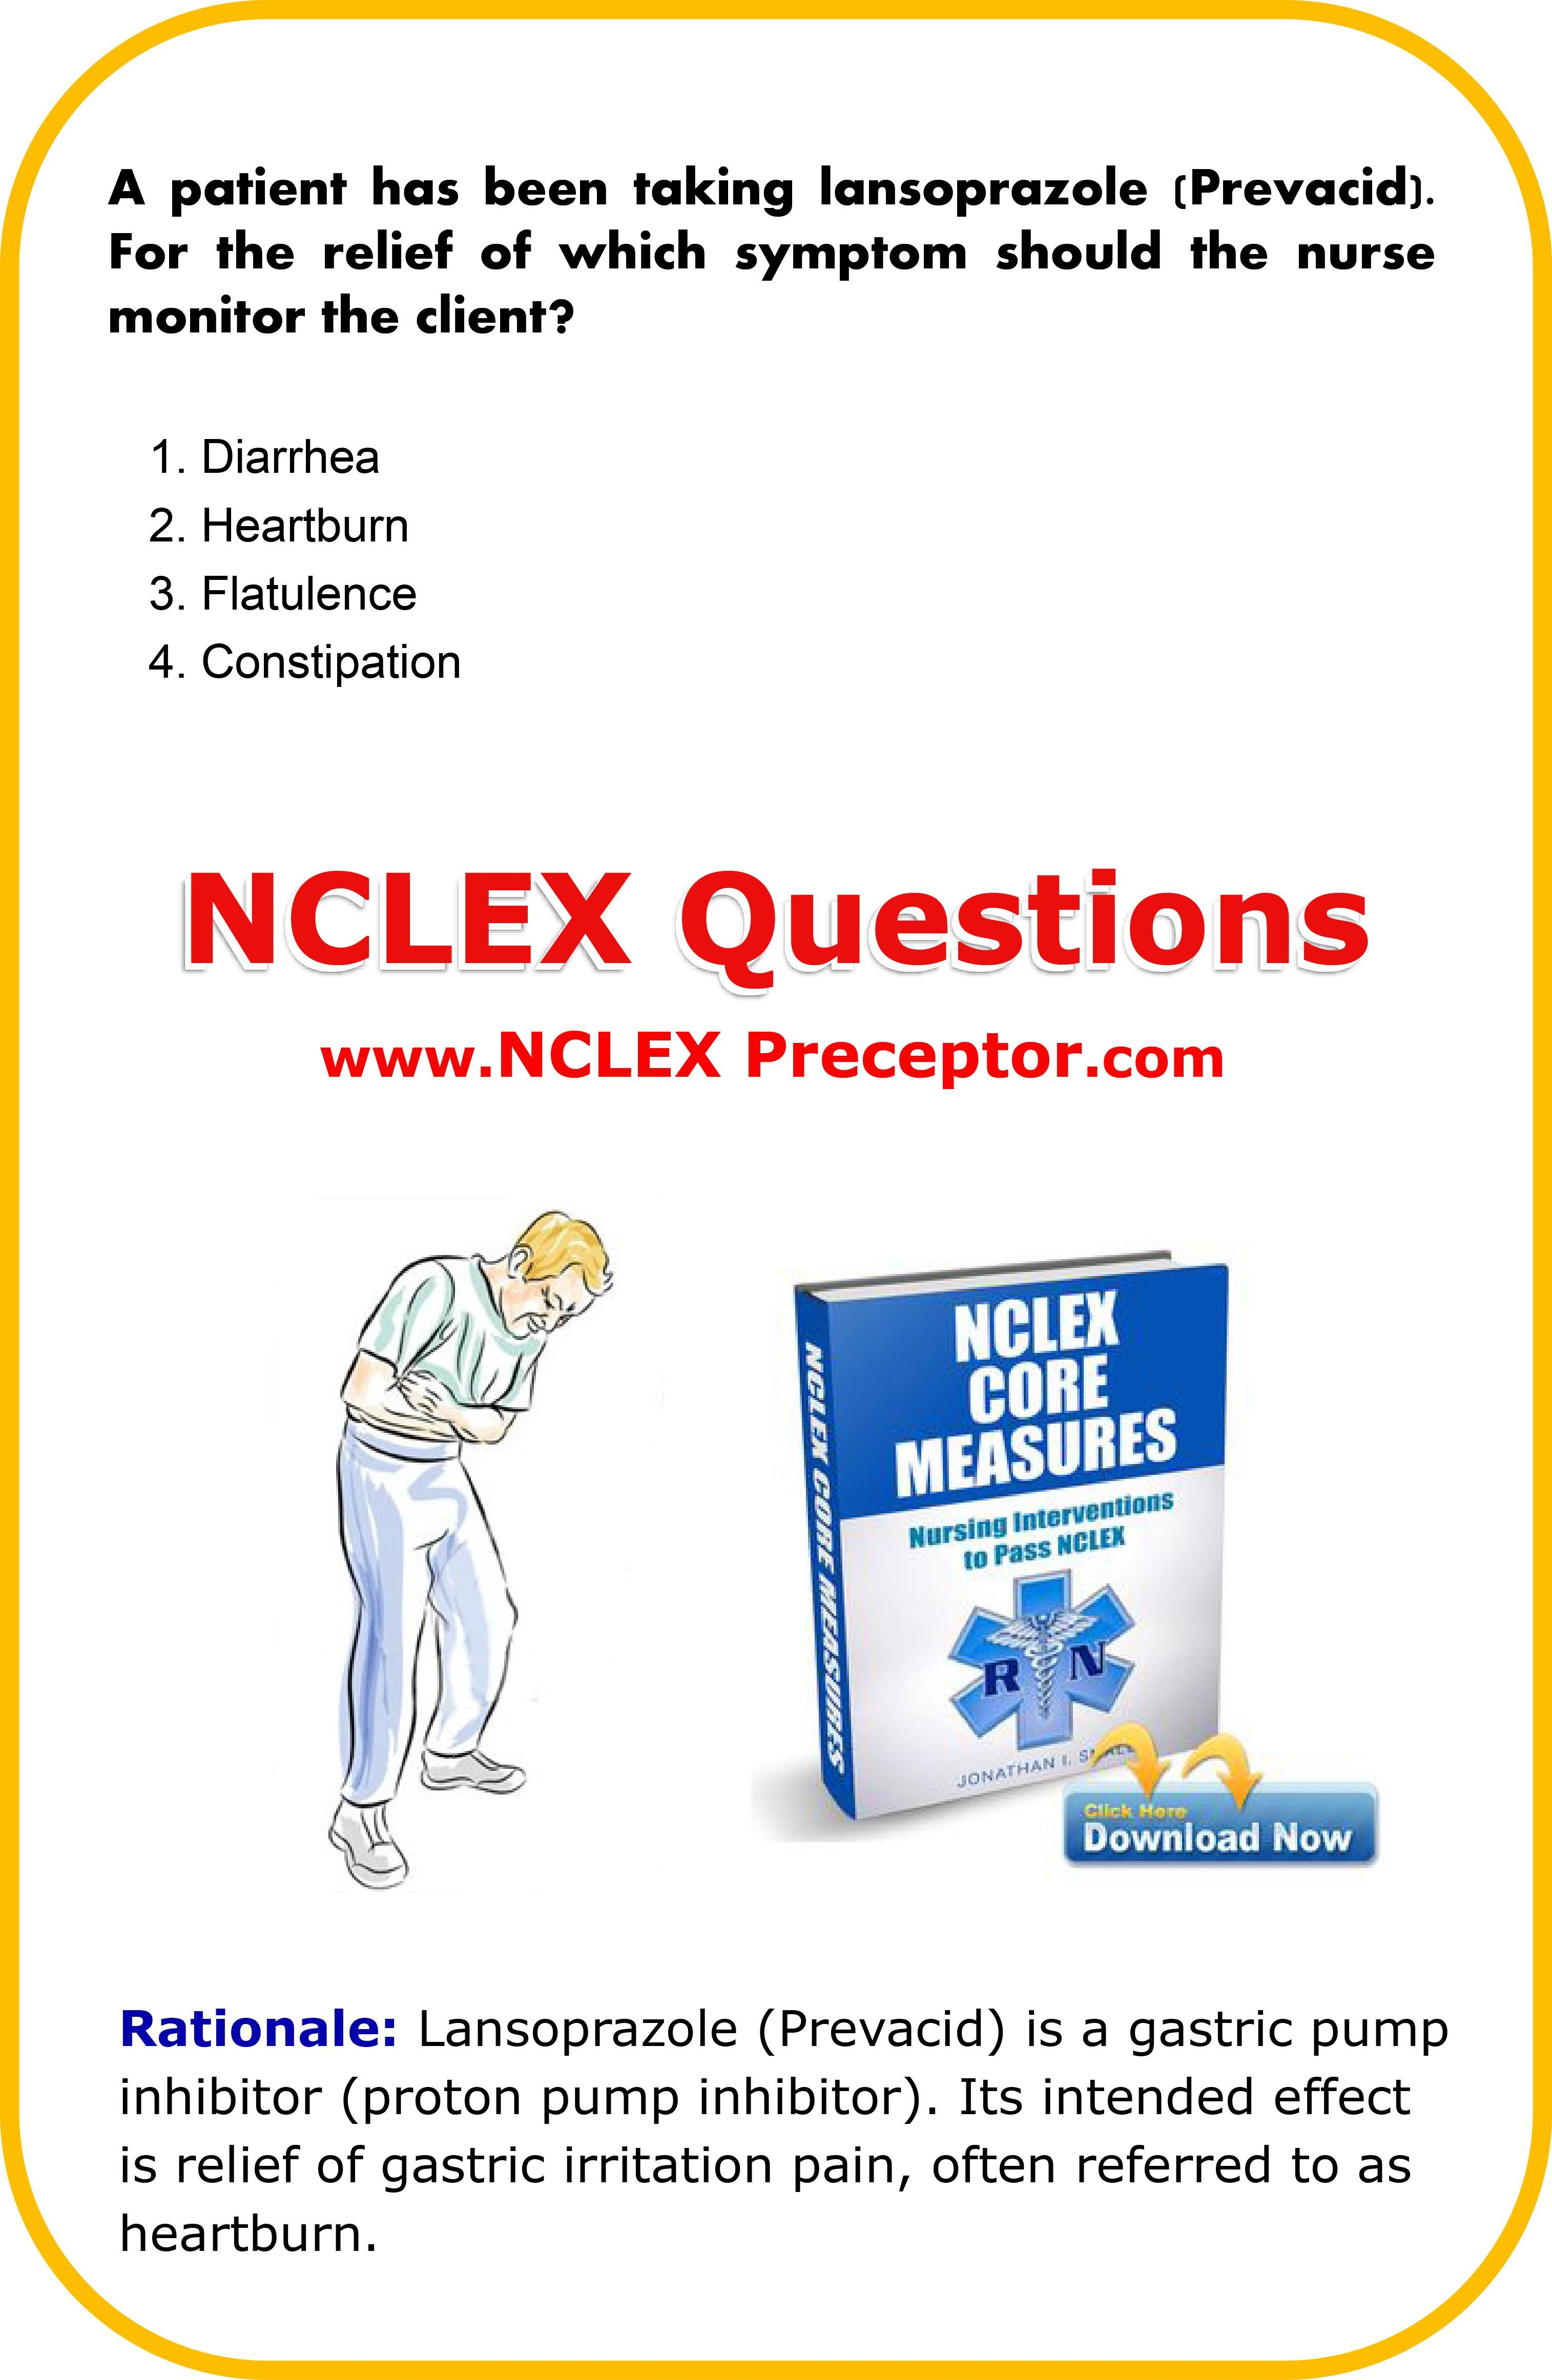 NCLEX tips on nursing care plans: NCLEX review questions to